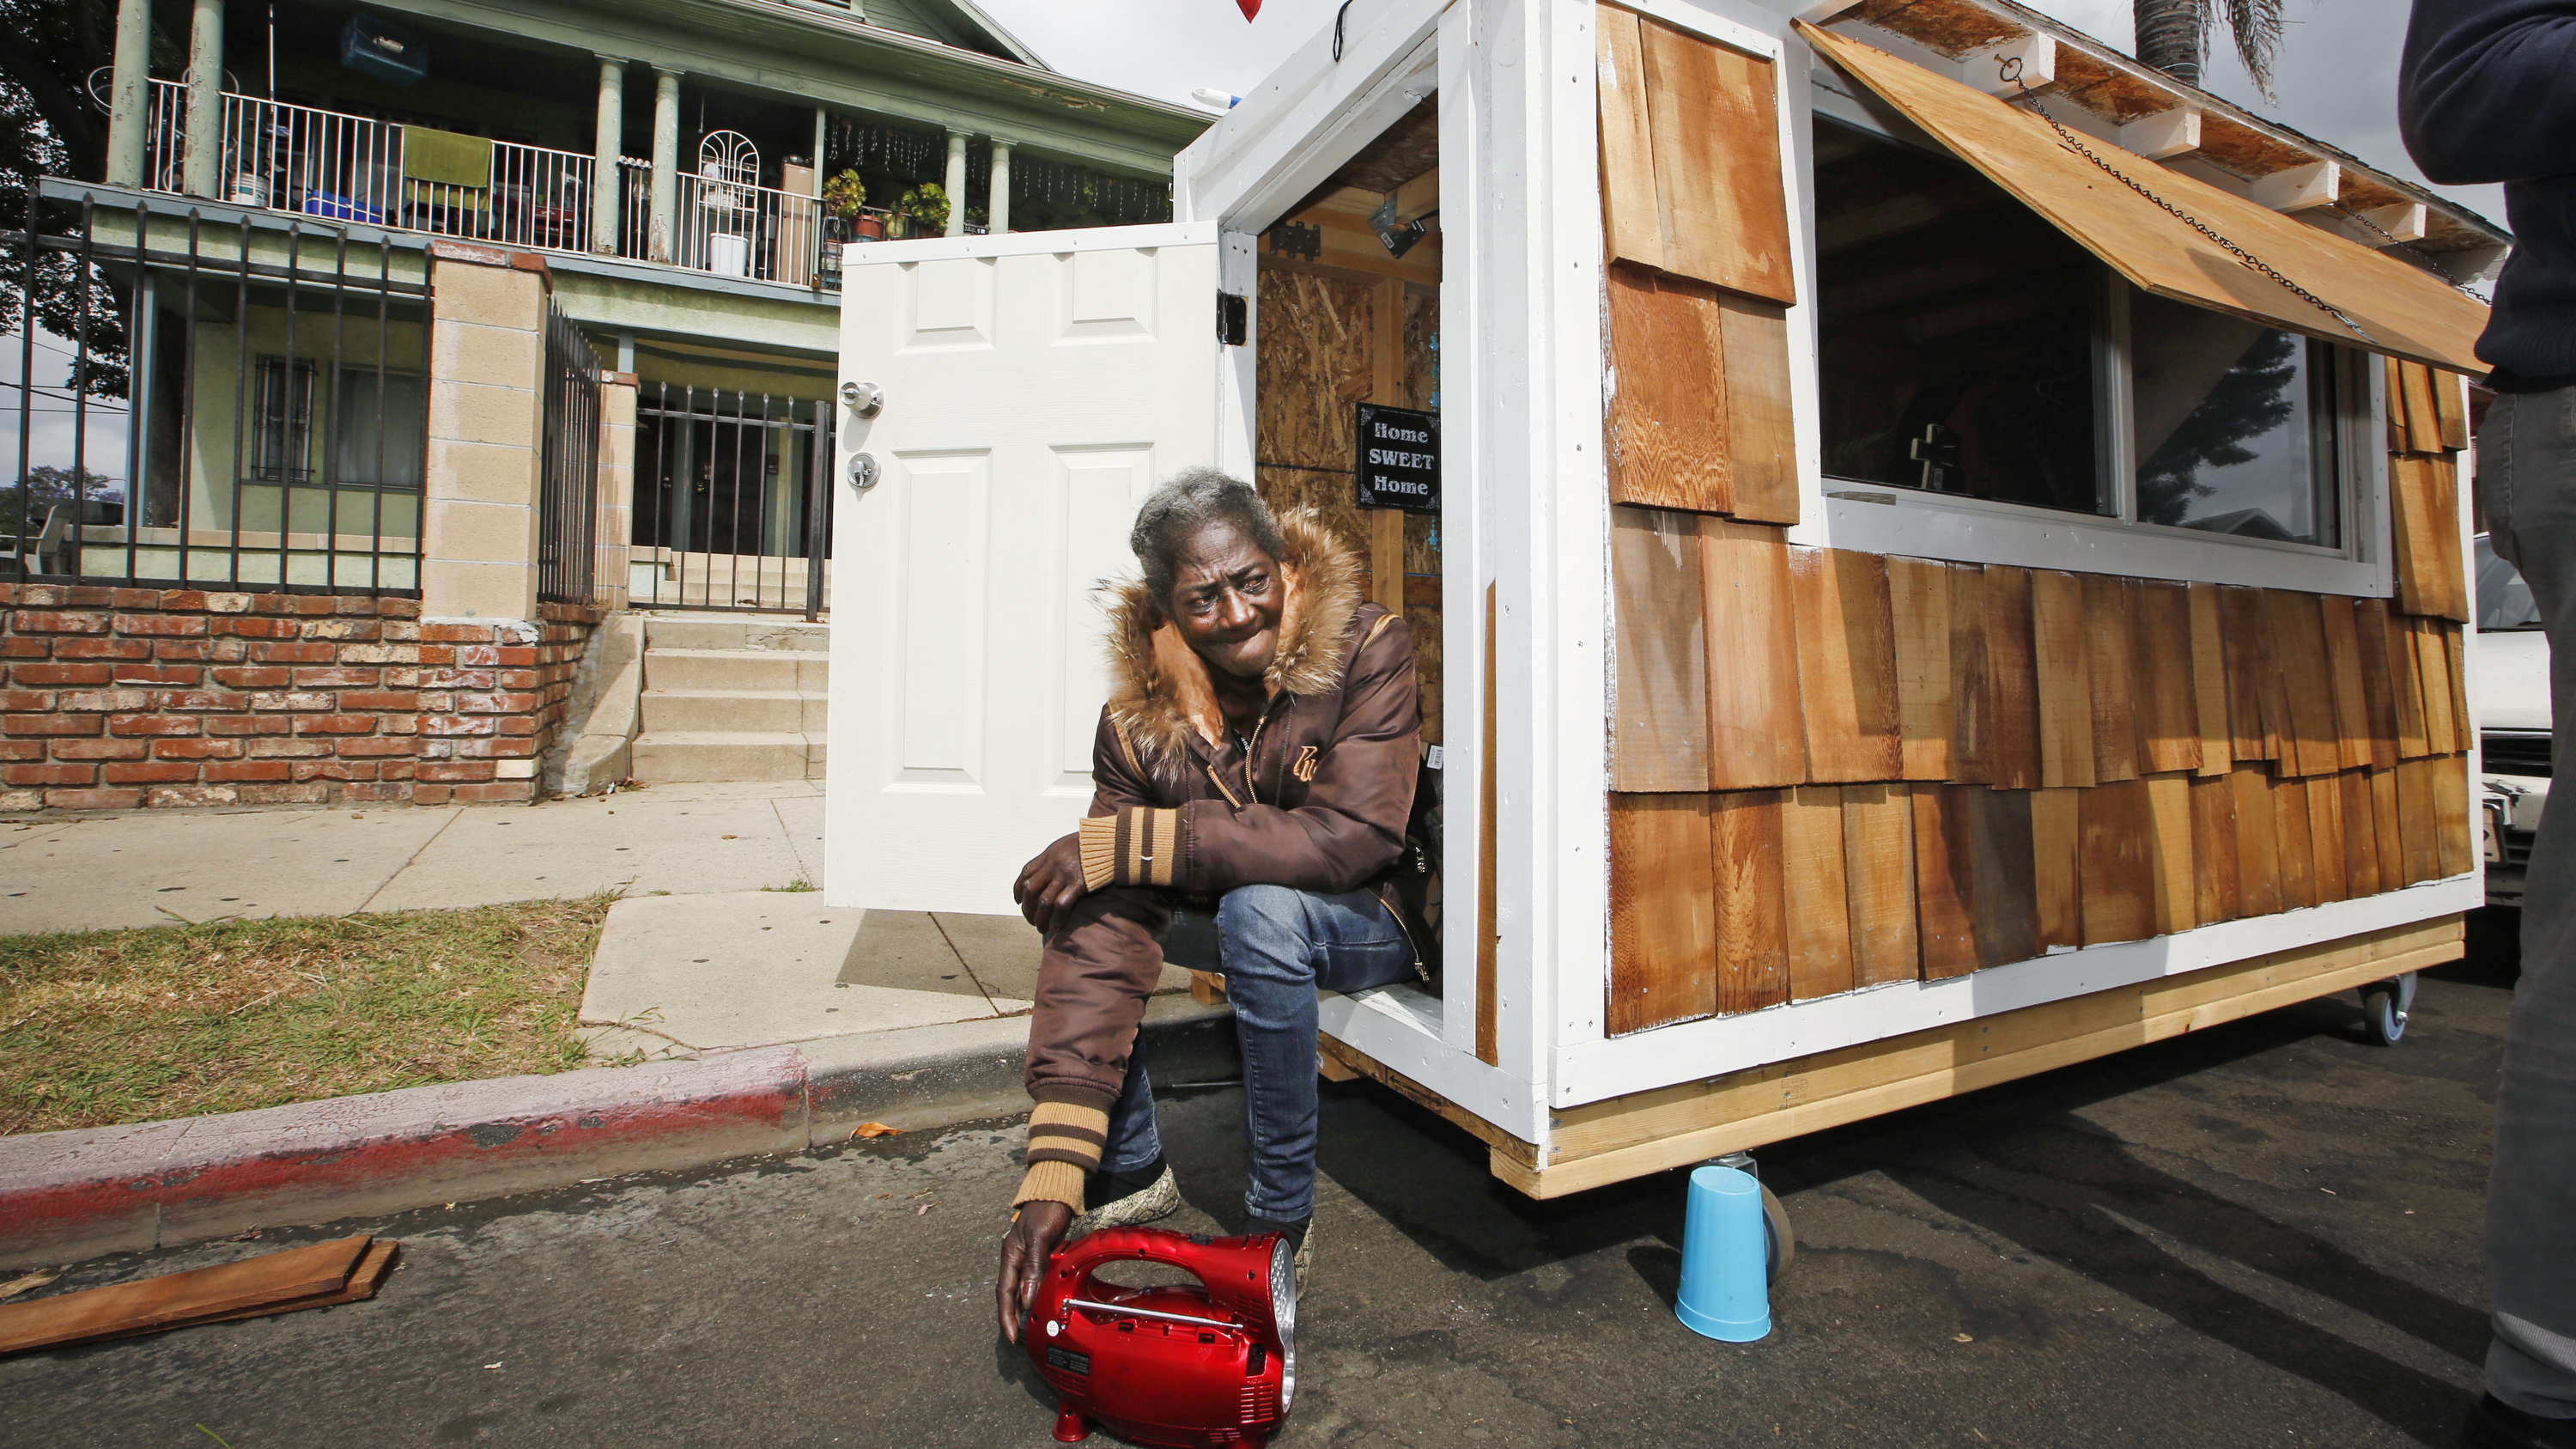 LA Officials Bring The Hammer Down On Tiny Houses For Homeless